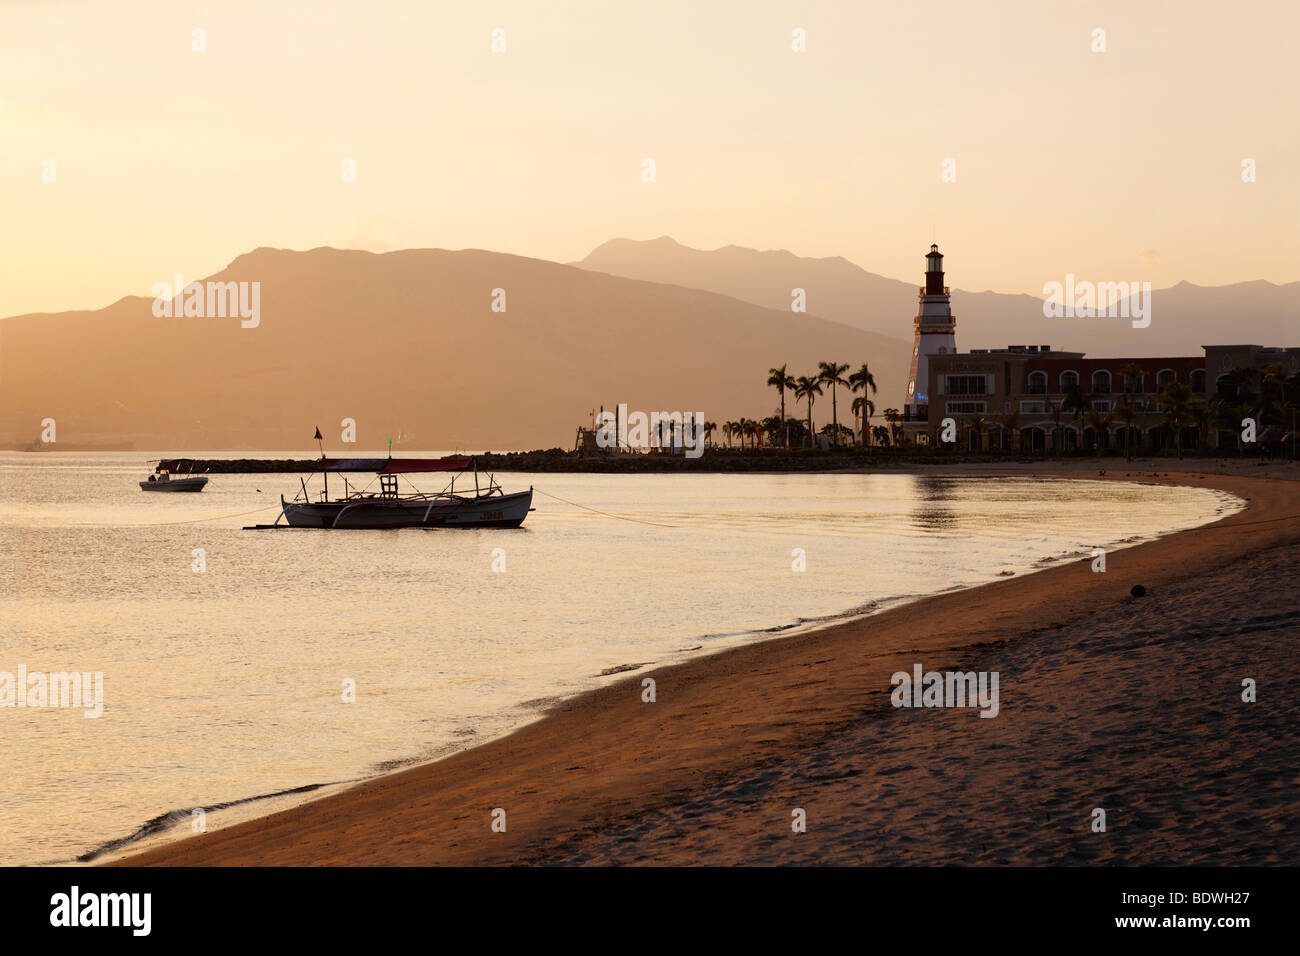 Beach in the evening, fishing boat, banka, lighthouse, mountains, palm trees, romantic mood, Olongapo City, Subic - Stock Image